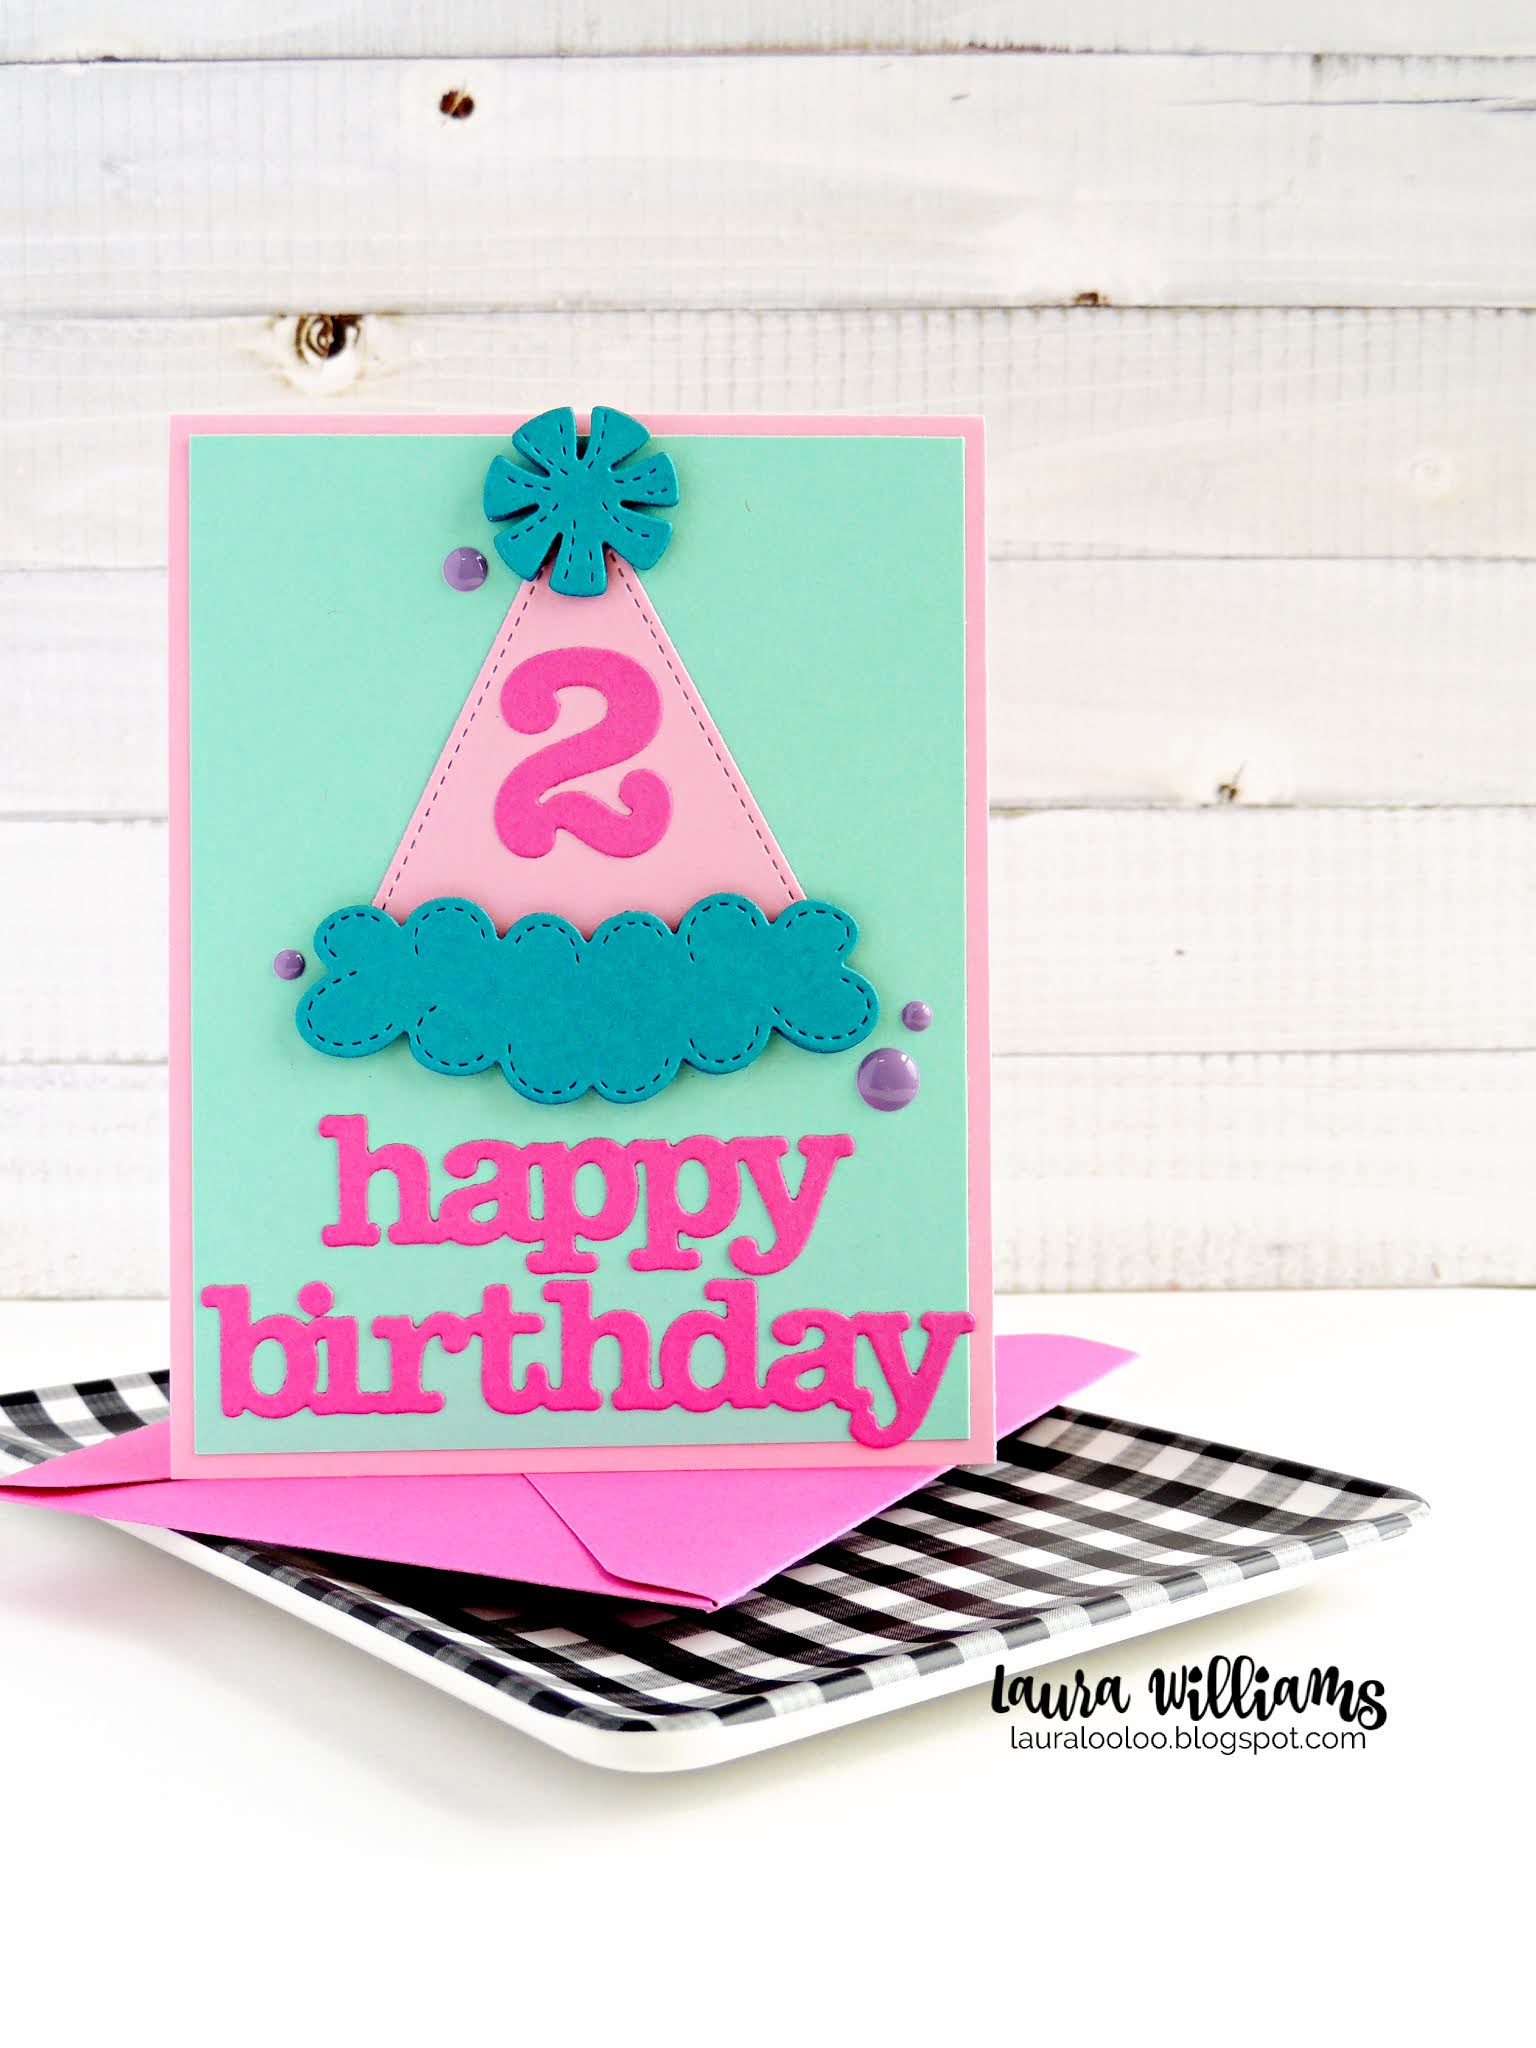 Happy 2nd birthday - stop by my blog to see more about this sweet handmade birthday card. Make your own with dies from Impression Obsession. Use the number dies and birthday word dies to customize the perfect birthday card for any age or person. Stop by my blog to see more ideas with these great die cutting supplies from Impression Obsession.